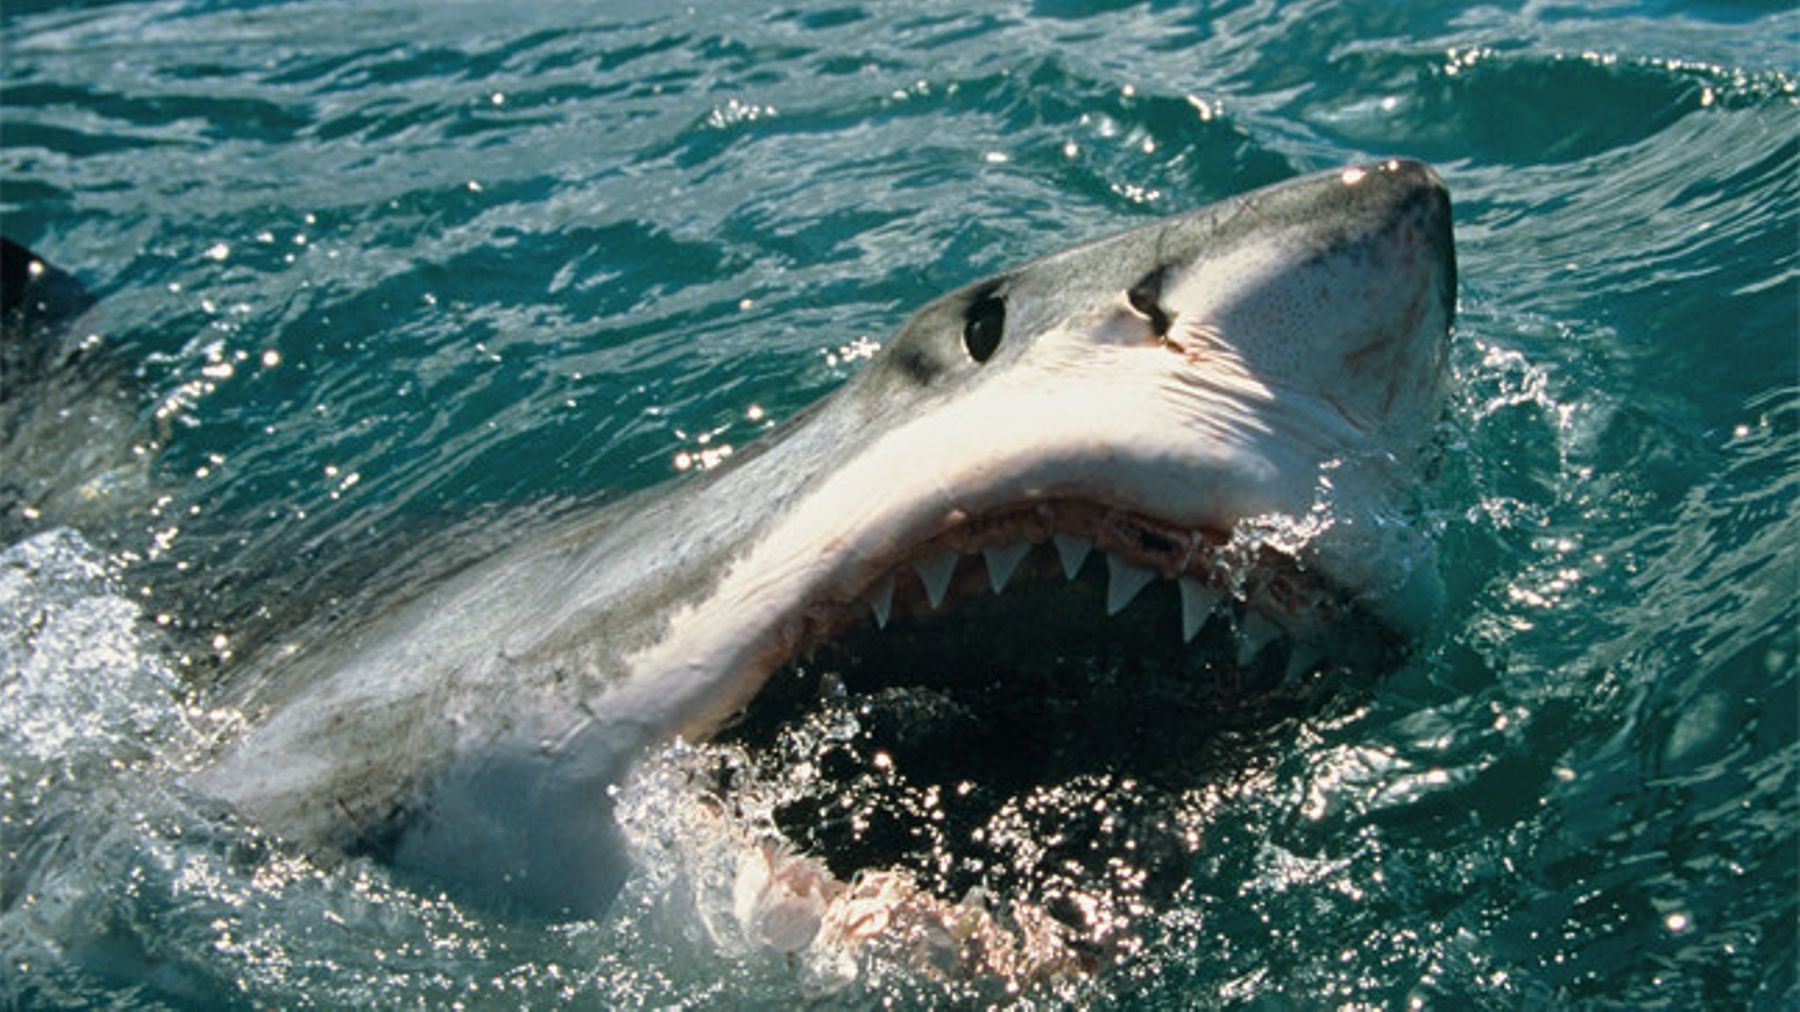 VIDEO: Swimmer survives 7ft great white shark attack – by